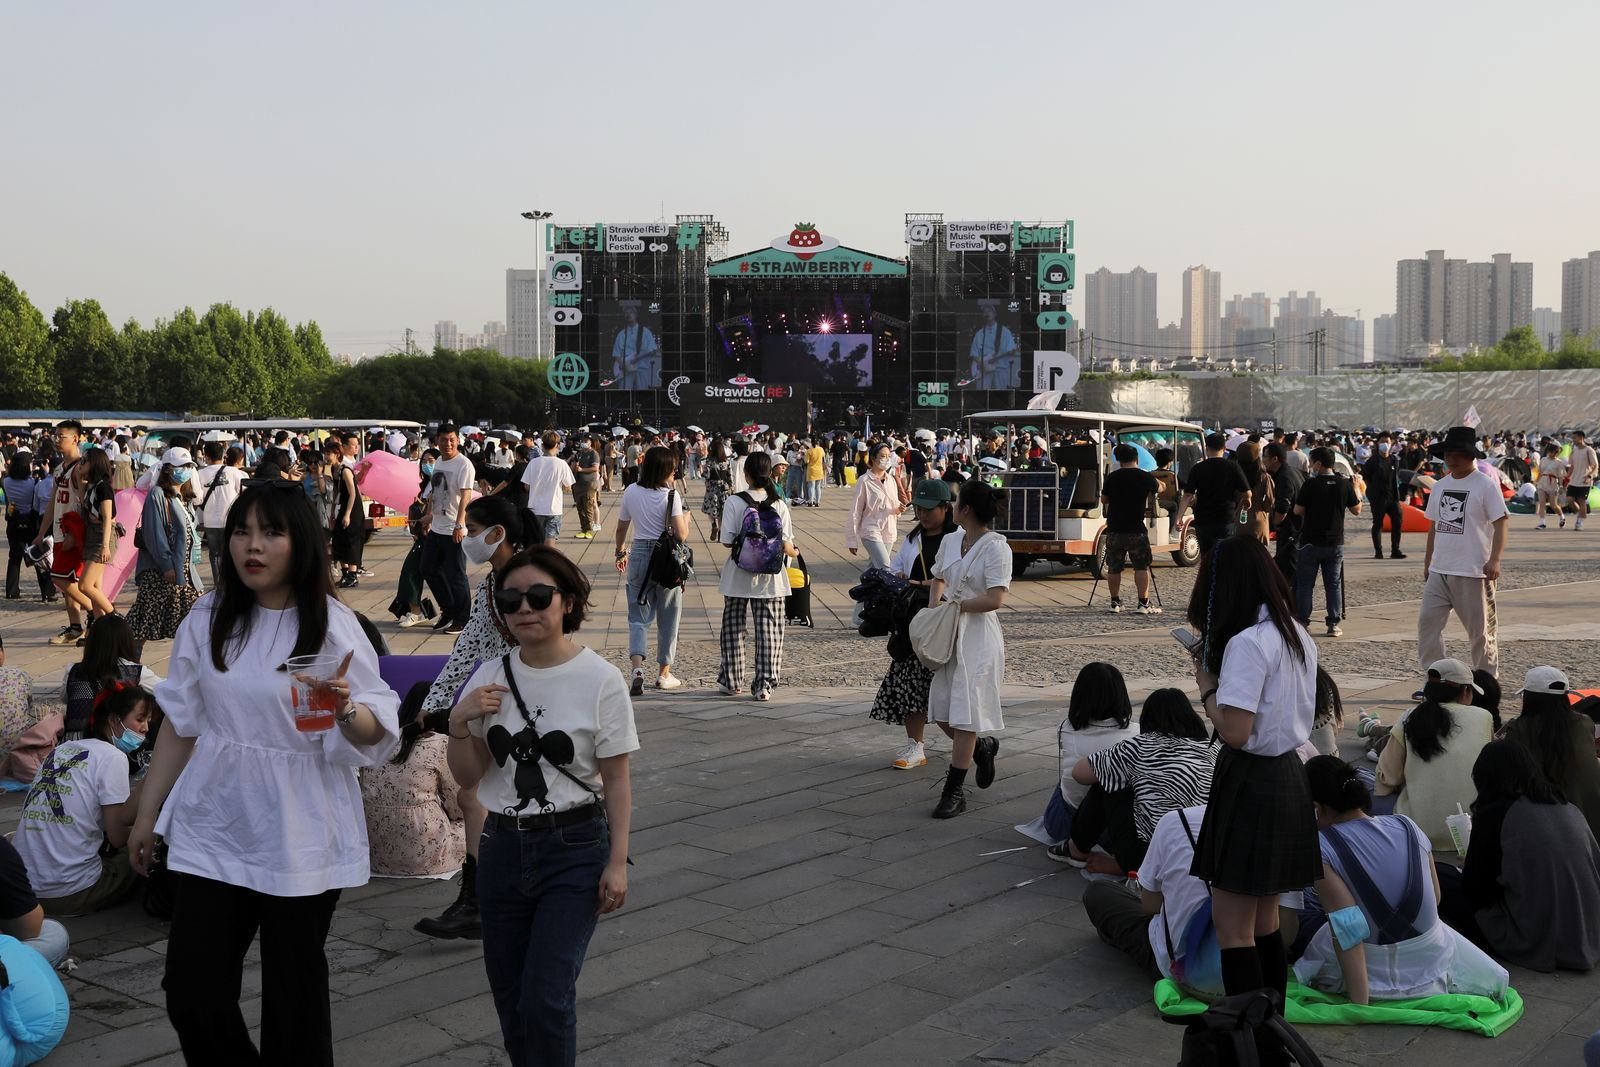 Strawberry Music Festival in Wuhan